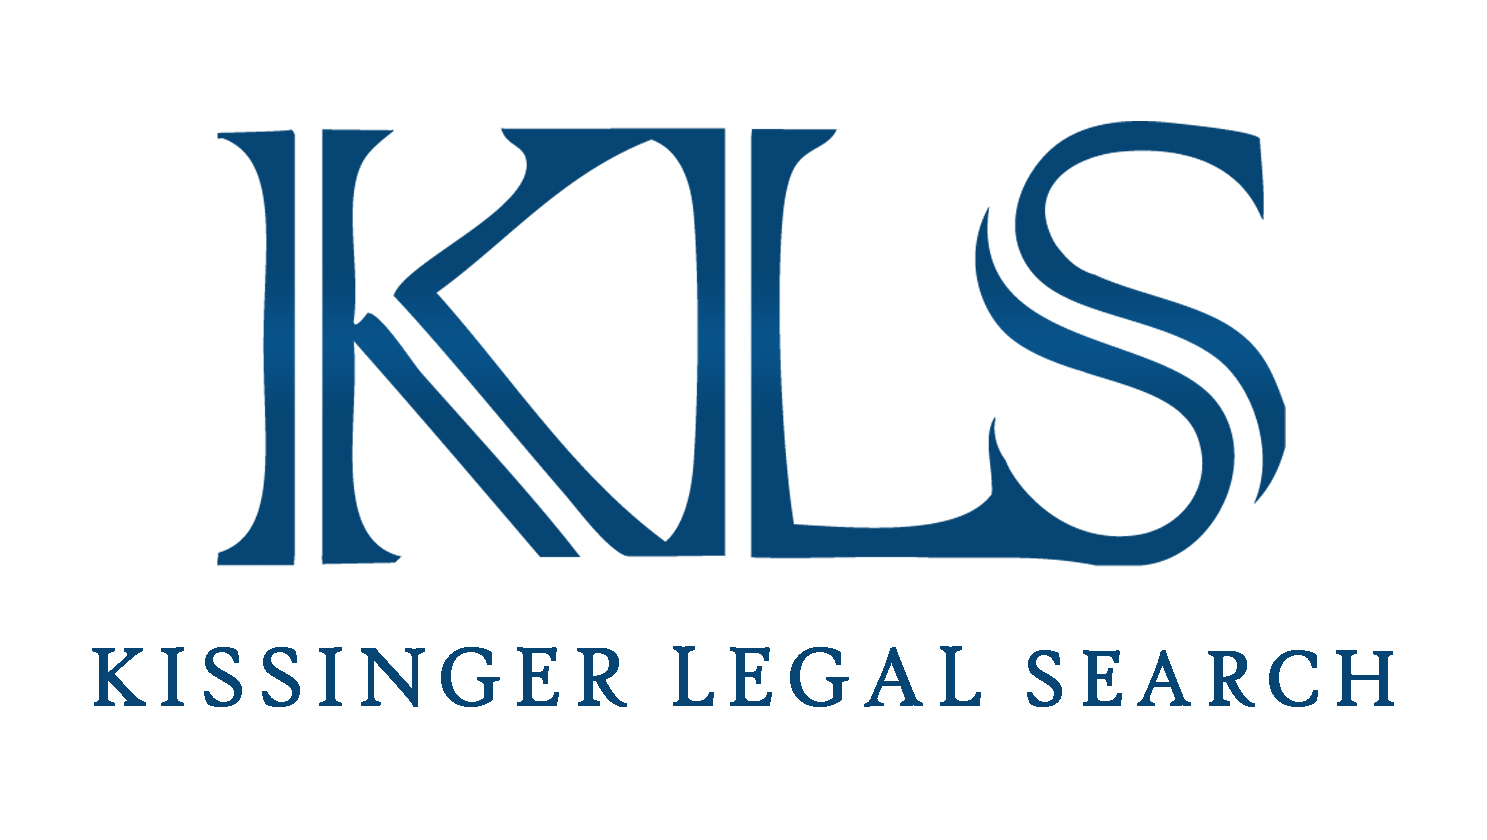 Kissinger Legal Search